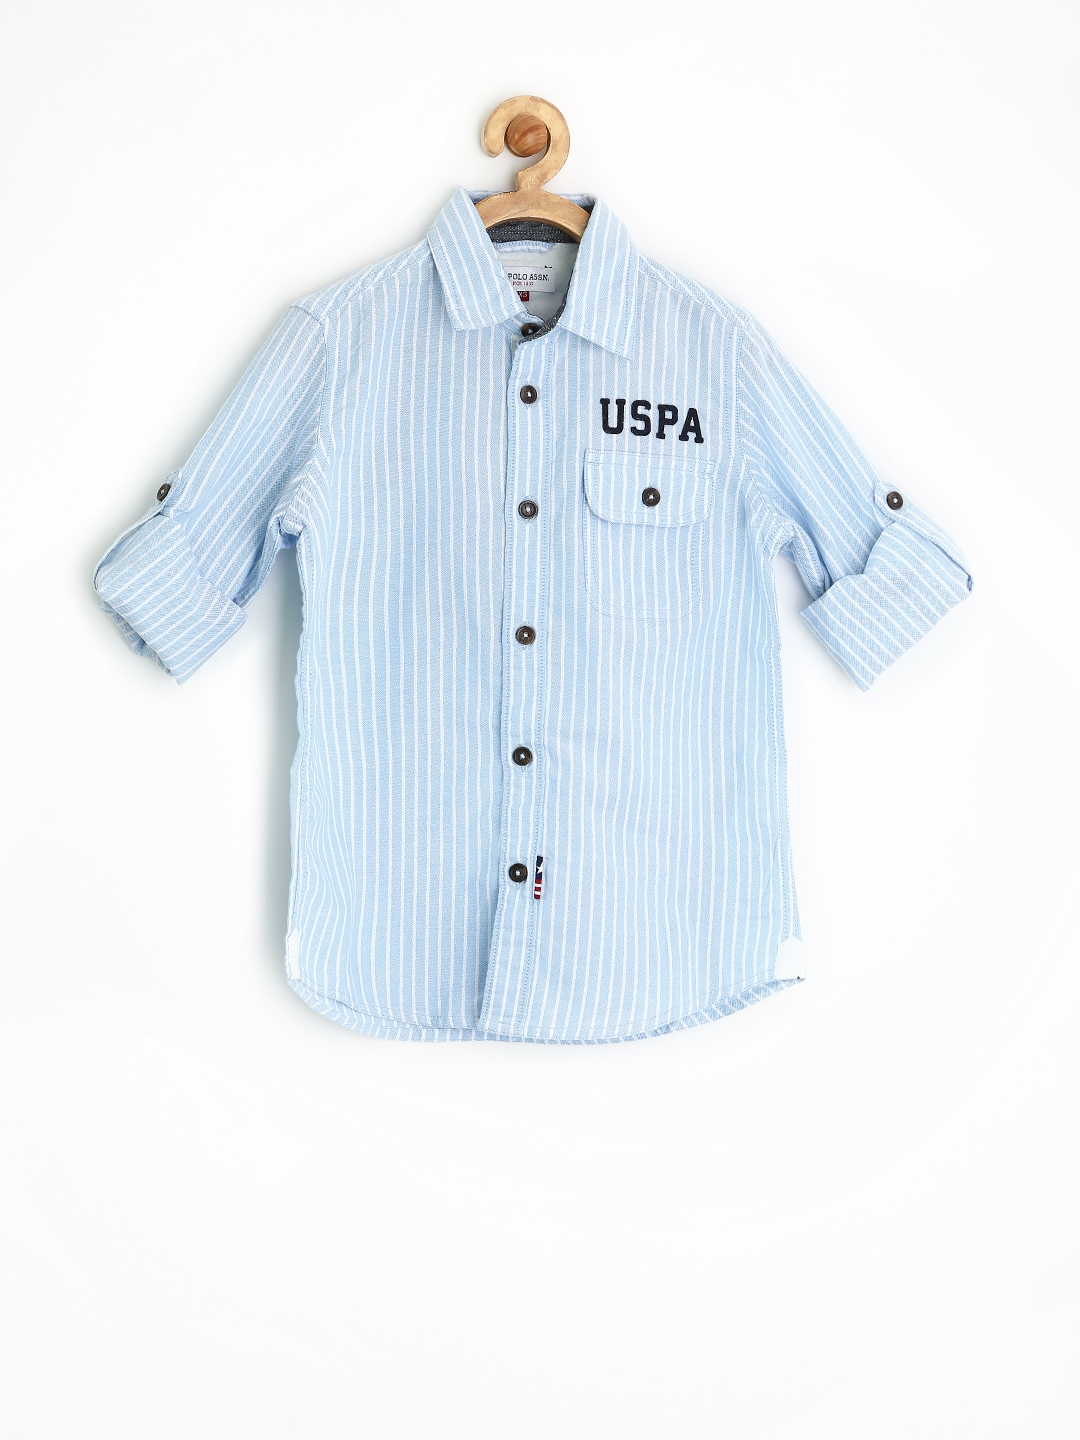 U.S. Polo Assn. Kids Boys Blue Striped Shirt